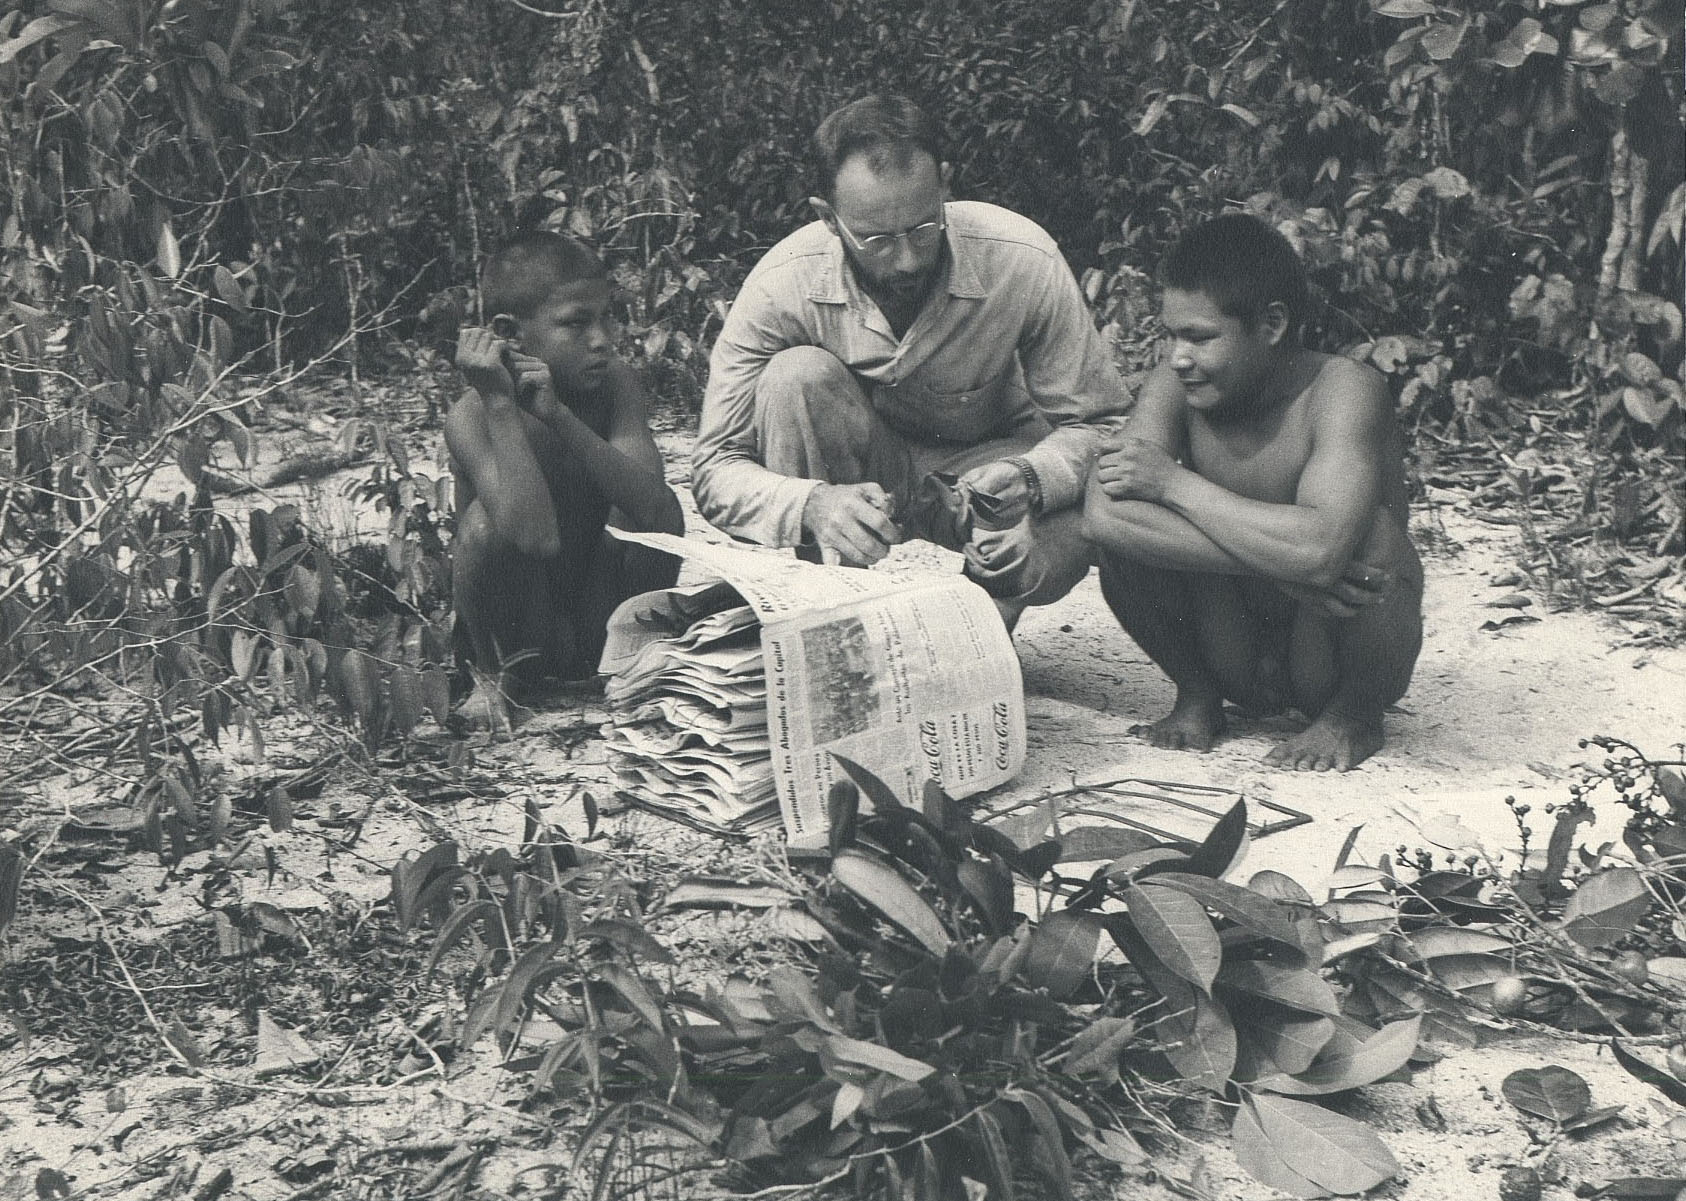 Dr Richard Evans Schultes collecting plants with Maku helpers, 1952.